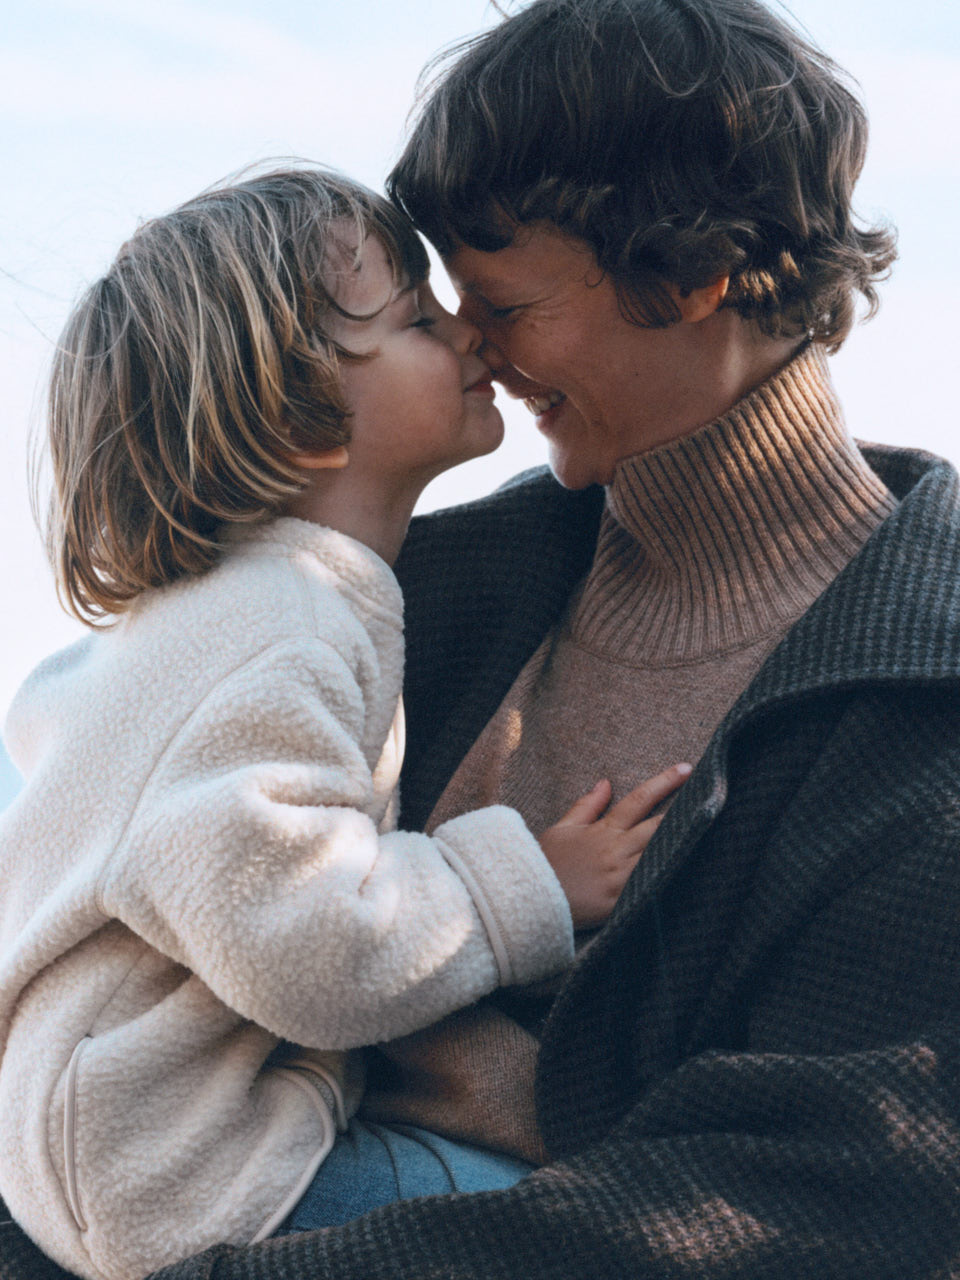 Child model wearing a white pike jacket hugging a female model wearing a turtleneck and a jacket